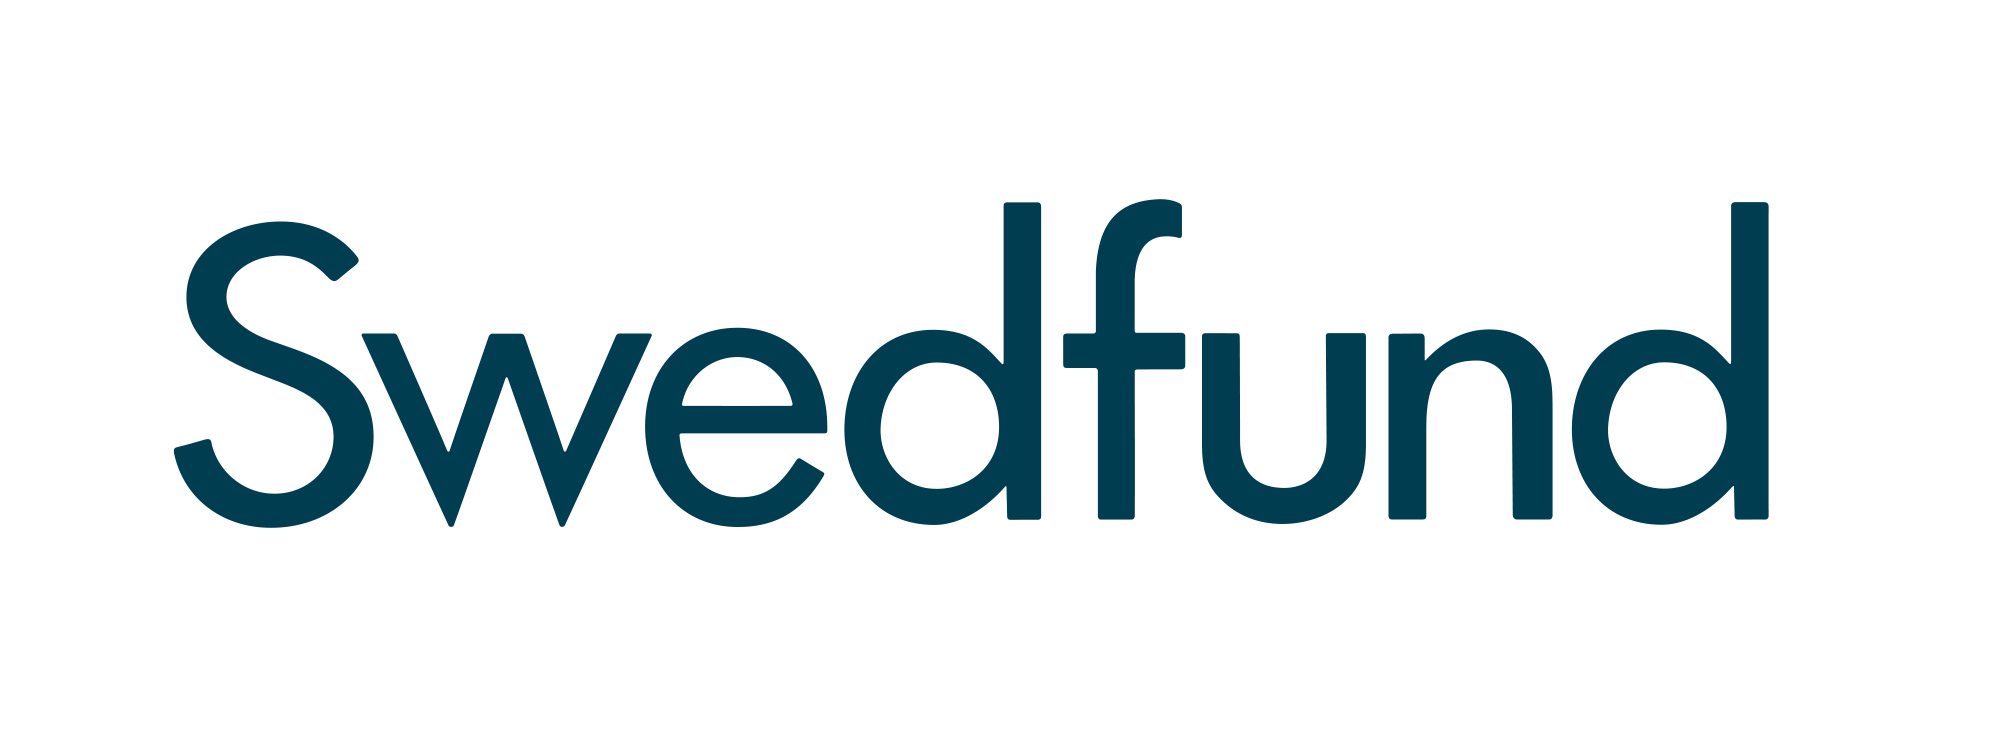 Swedfund Contributes With 15 Million Dollars In Loan Financing To Swedfund